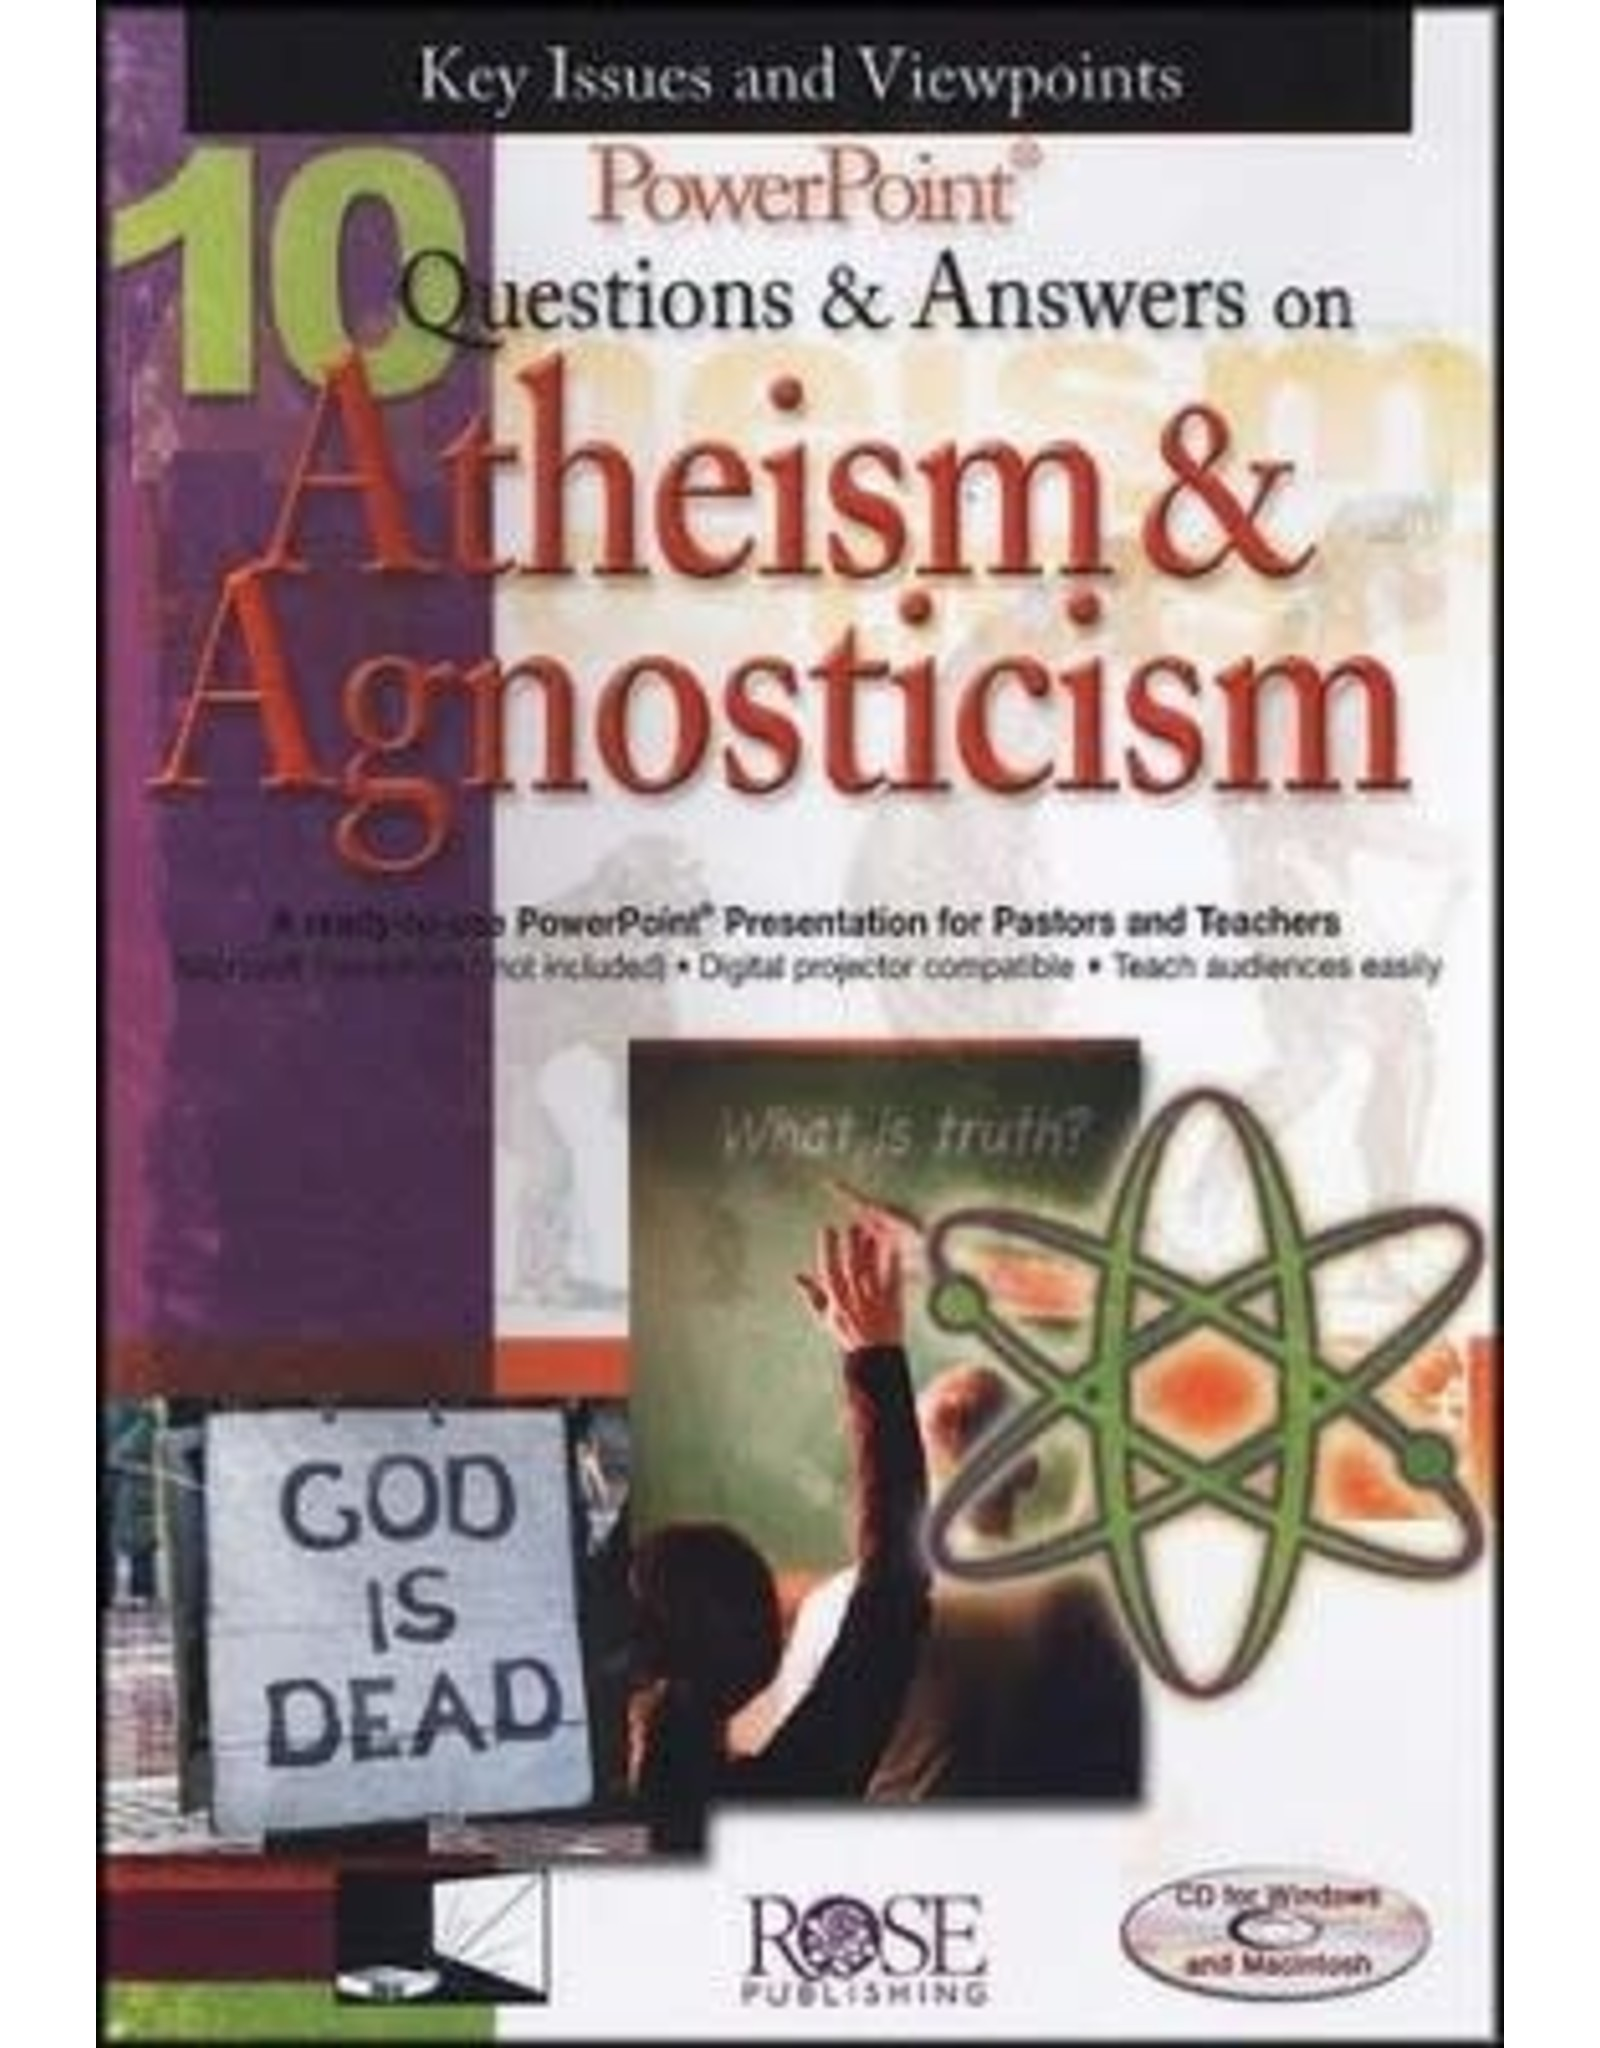 Rose Publishers 10 Questions and Answers on Atheism & Agnosticism